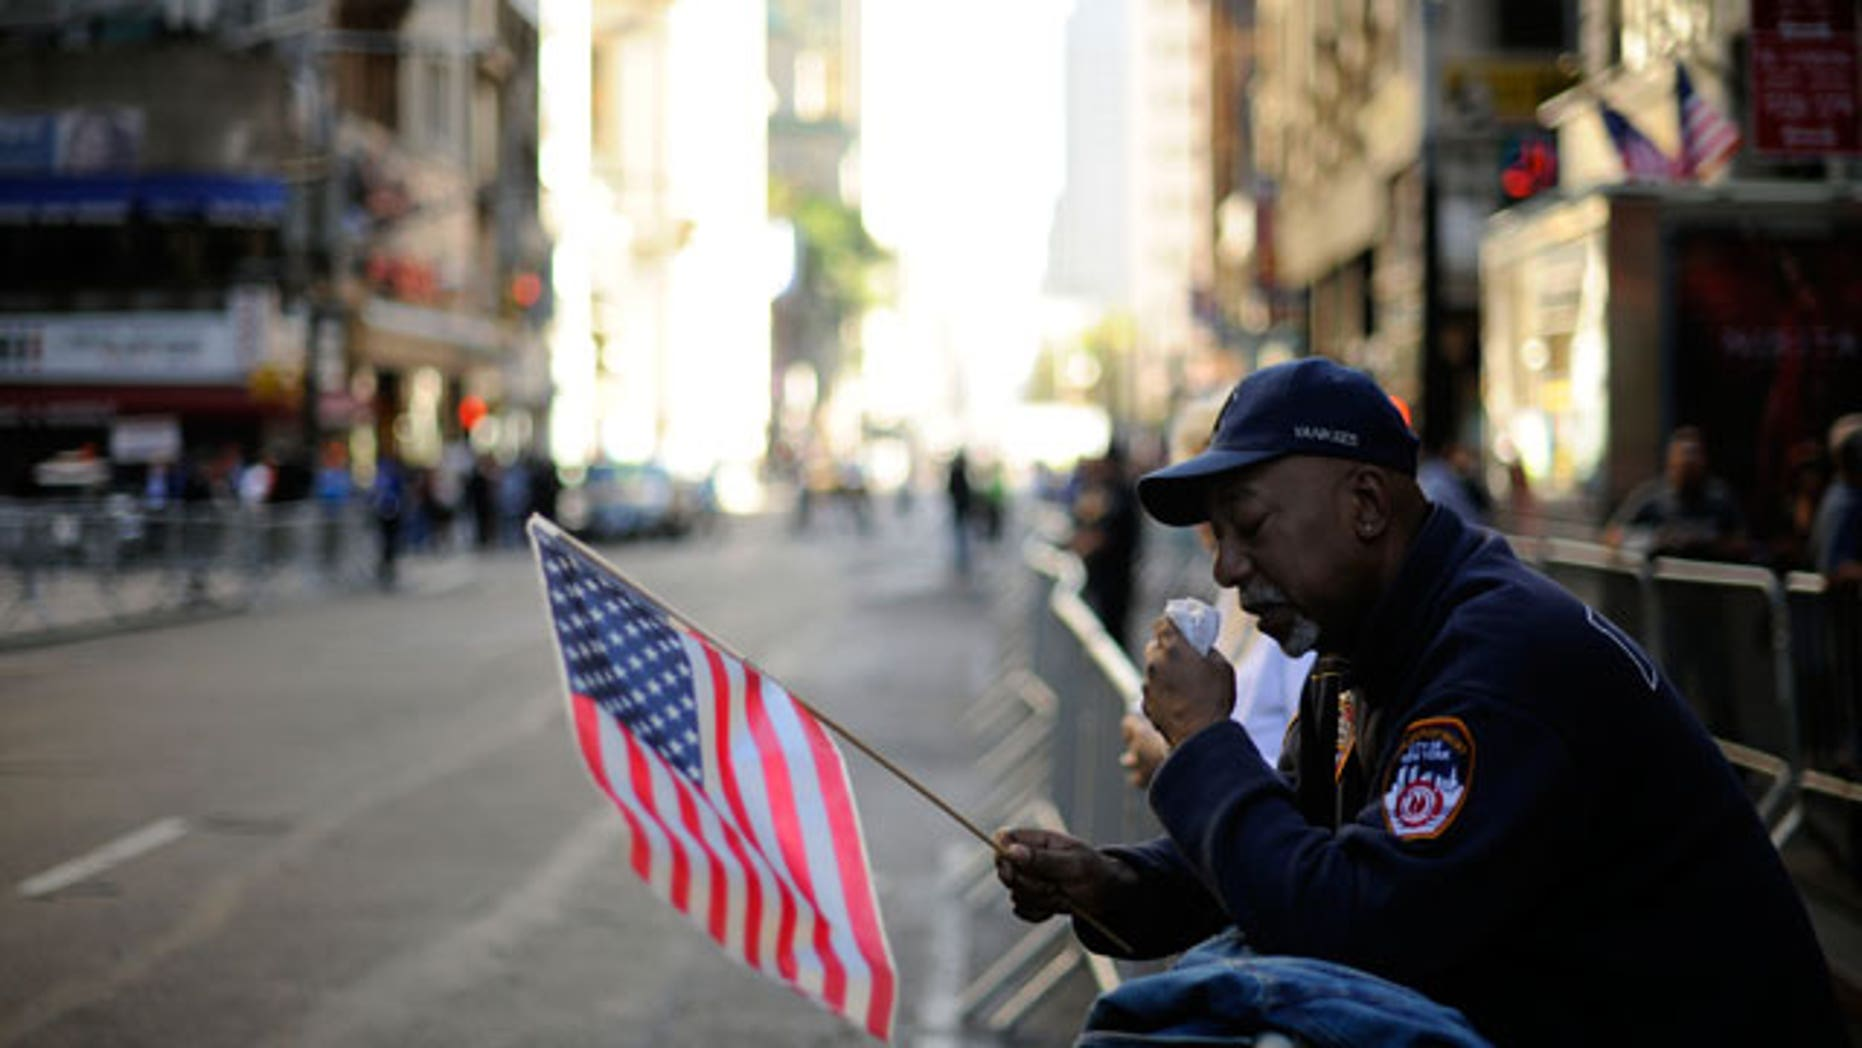 A man wipes away a tear as he listens to the reading of the names during New York City's September 11th Commemoration Ceremony on Saturday, Sept. 11, 2010, on the ninth anniversary of the terrorist attacks.